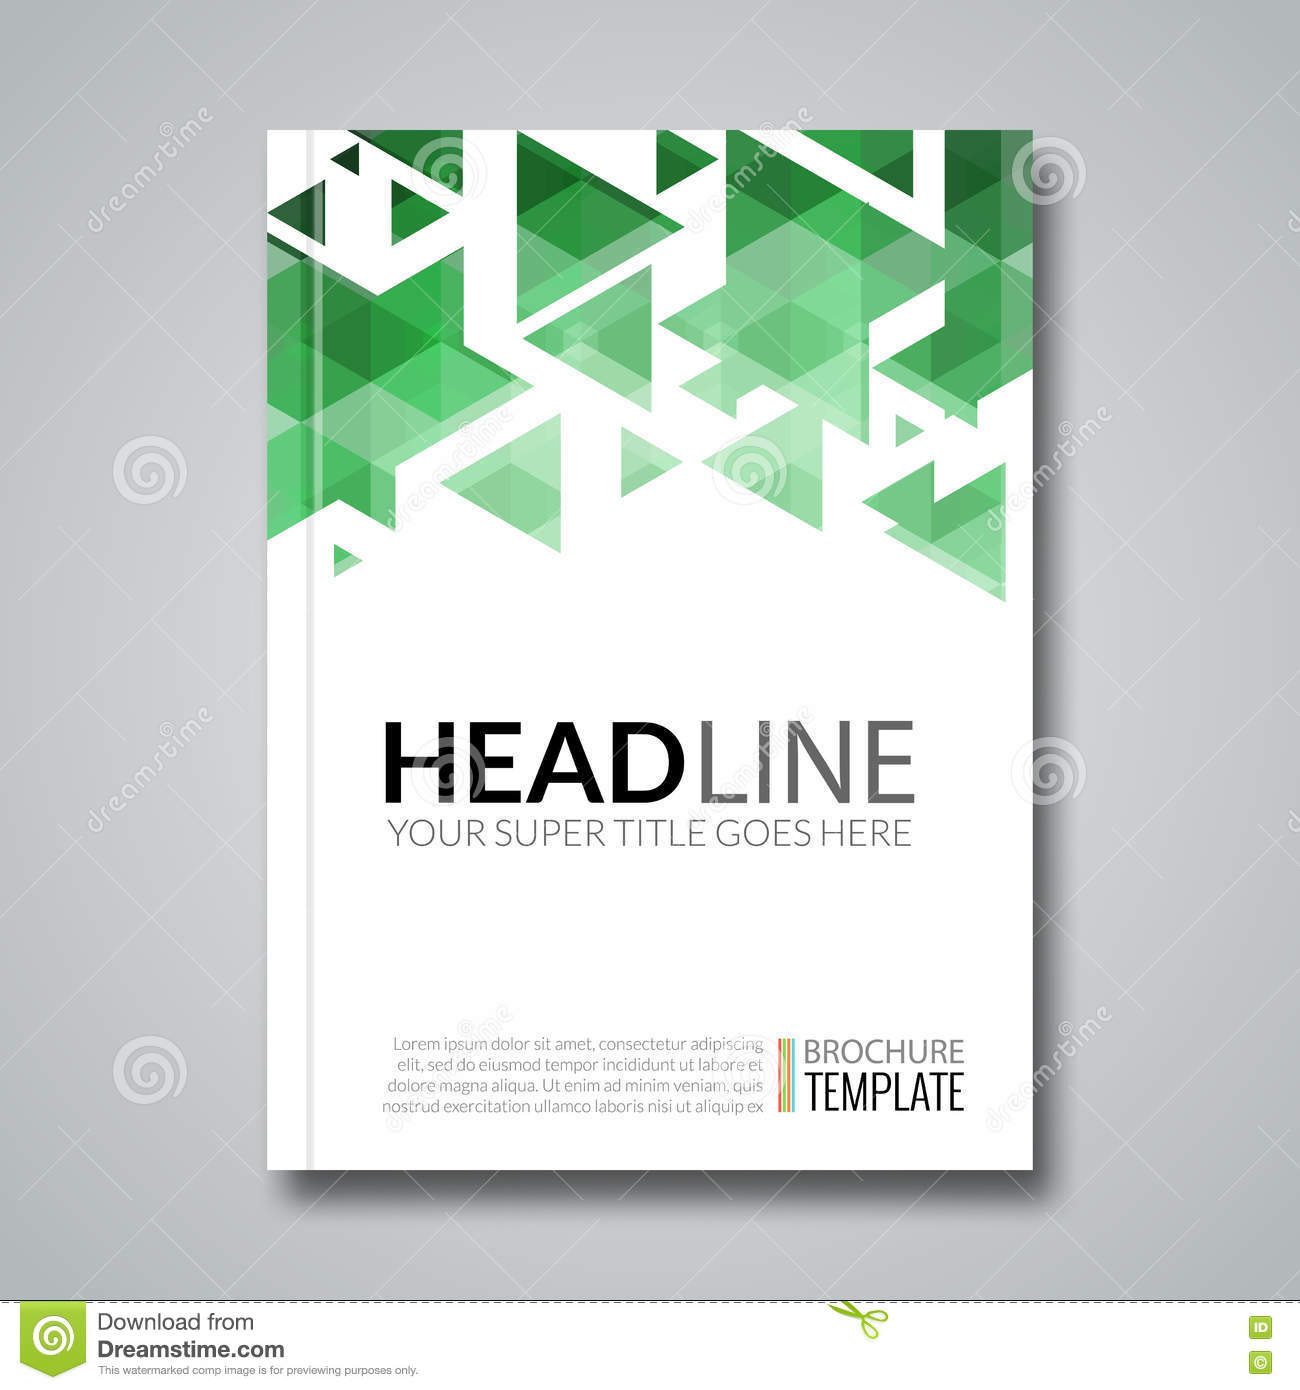 Brochure Booklet Flyer Or Book Cover Template Vector : Cover report colorful triangle geometric prospectus design